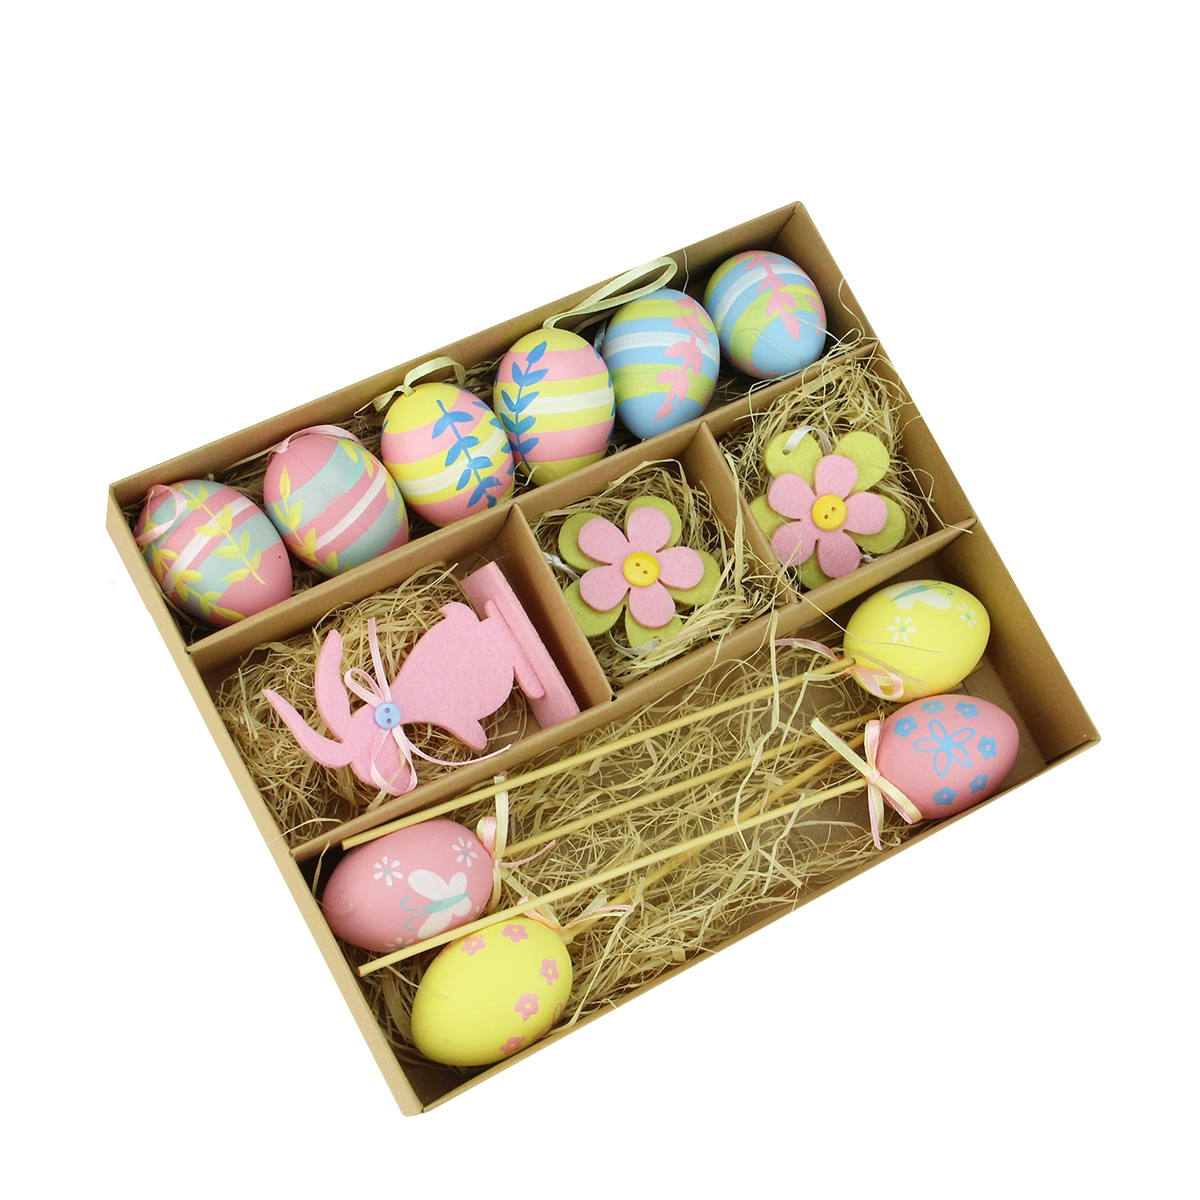 Set of 13 Pastel Pink, Blue and Yellow Easter Egg, Flower & Bunny Spring Decorations